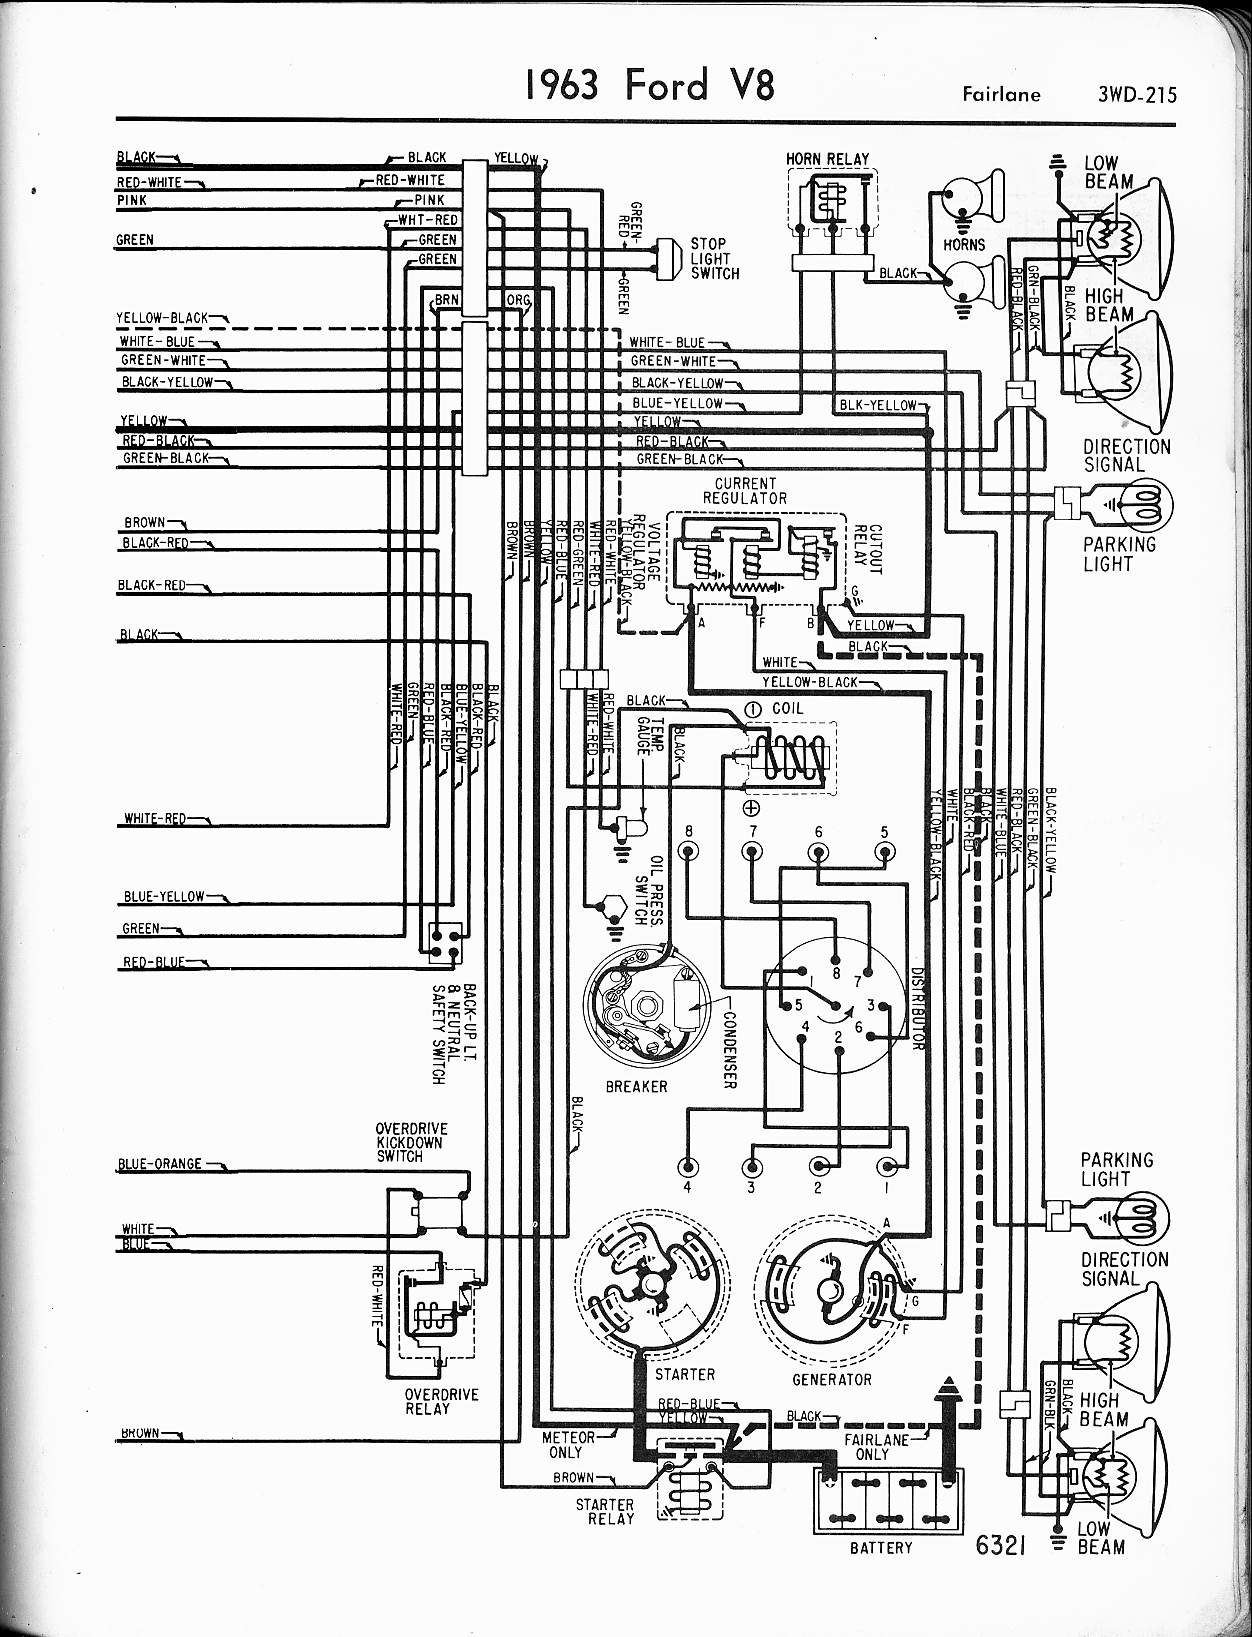 65 Ford Galaxie Fuse Box - Wiring Diagram Blog Data Au Falcon Wiring Diagram on ar diagram, pe diagram, vg diagram, ac diagram, cd diagram, vn diagram, pt diagram, ro diagram, ba diagram,